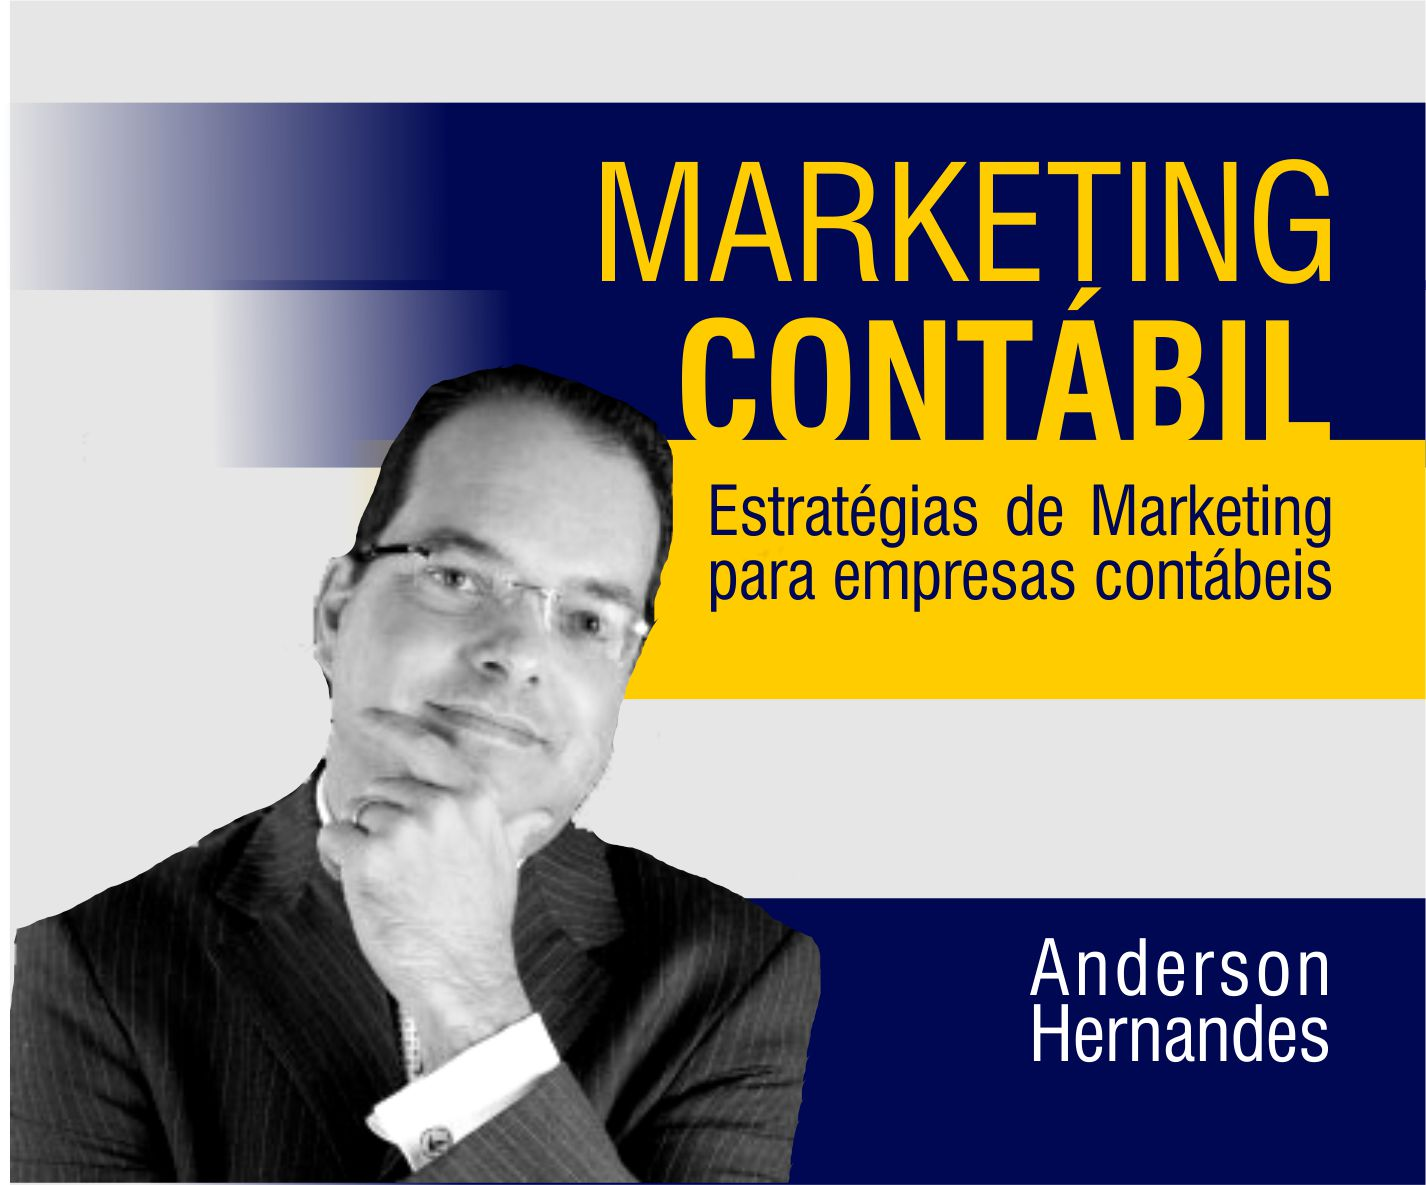 MARKETING CONTÁBIL 2.0